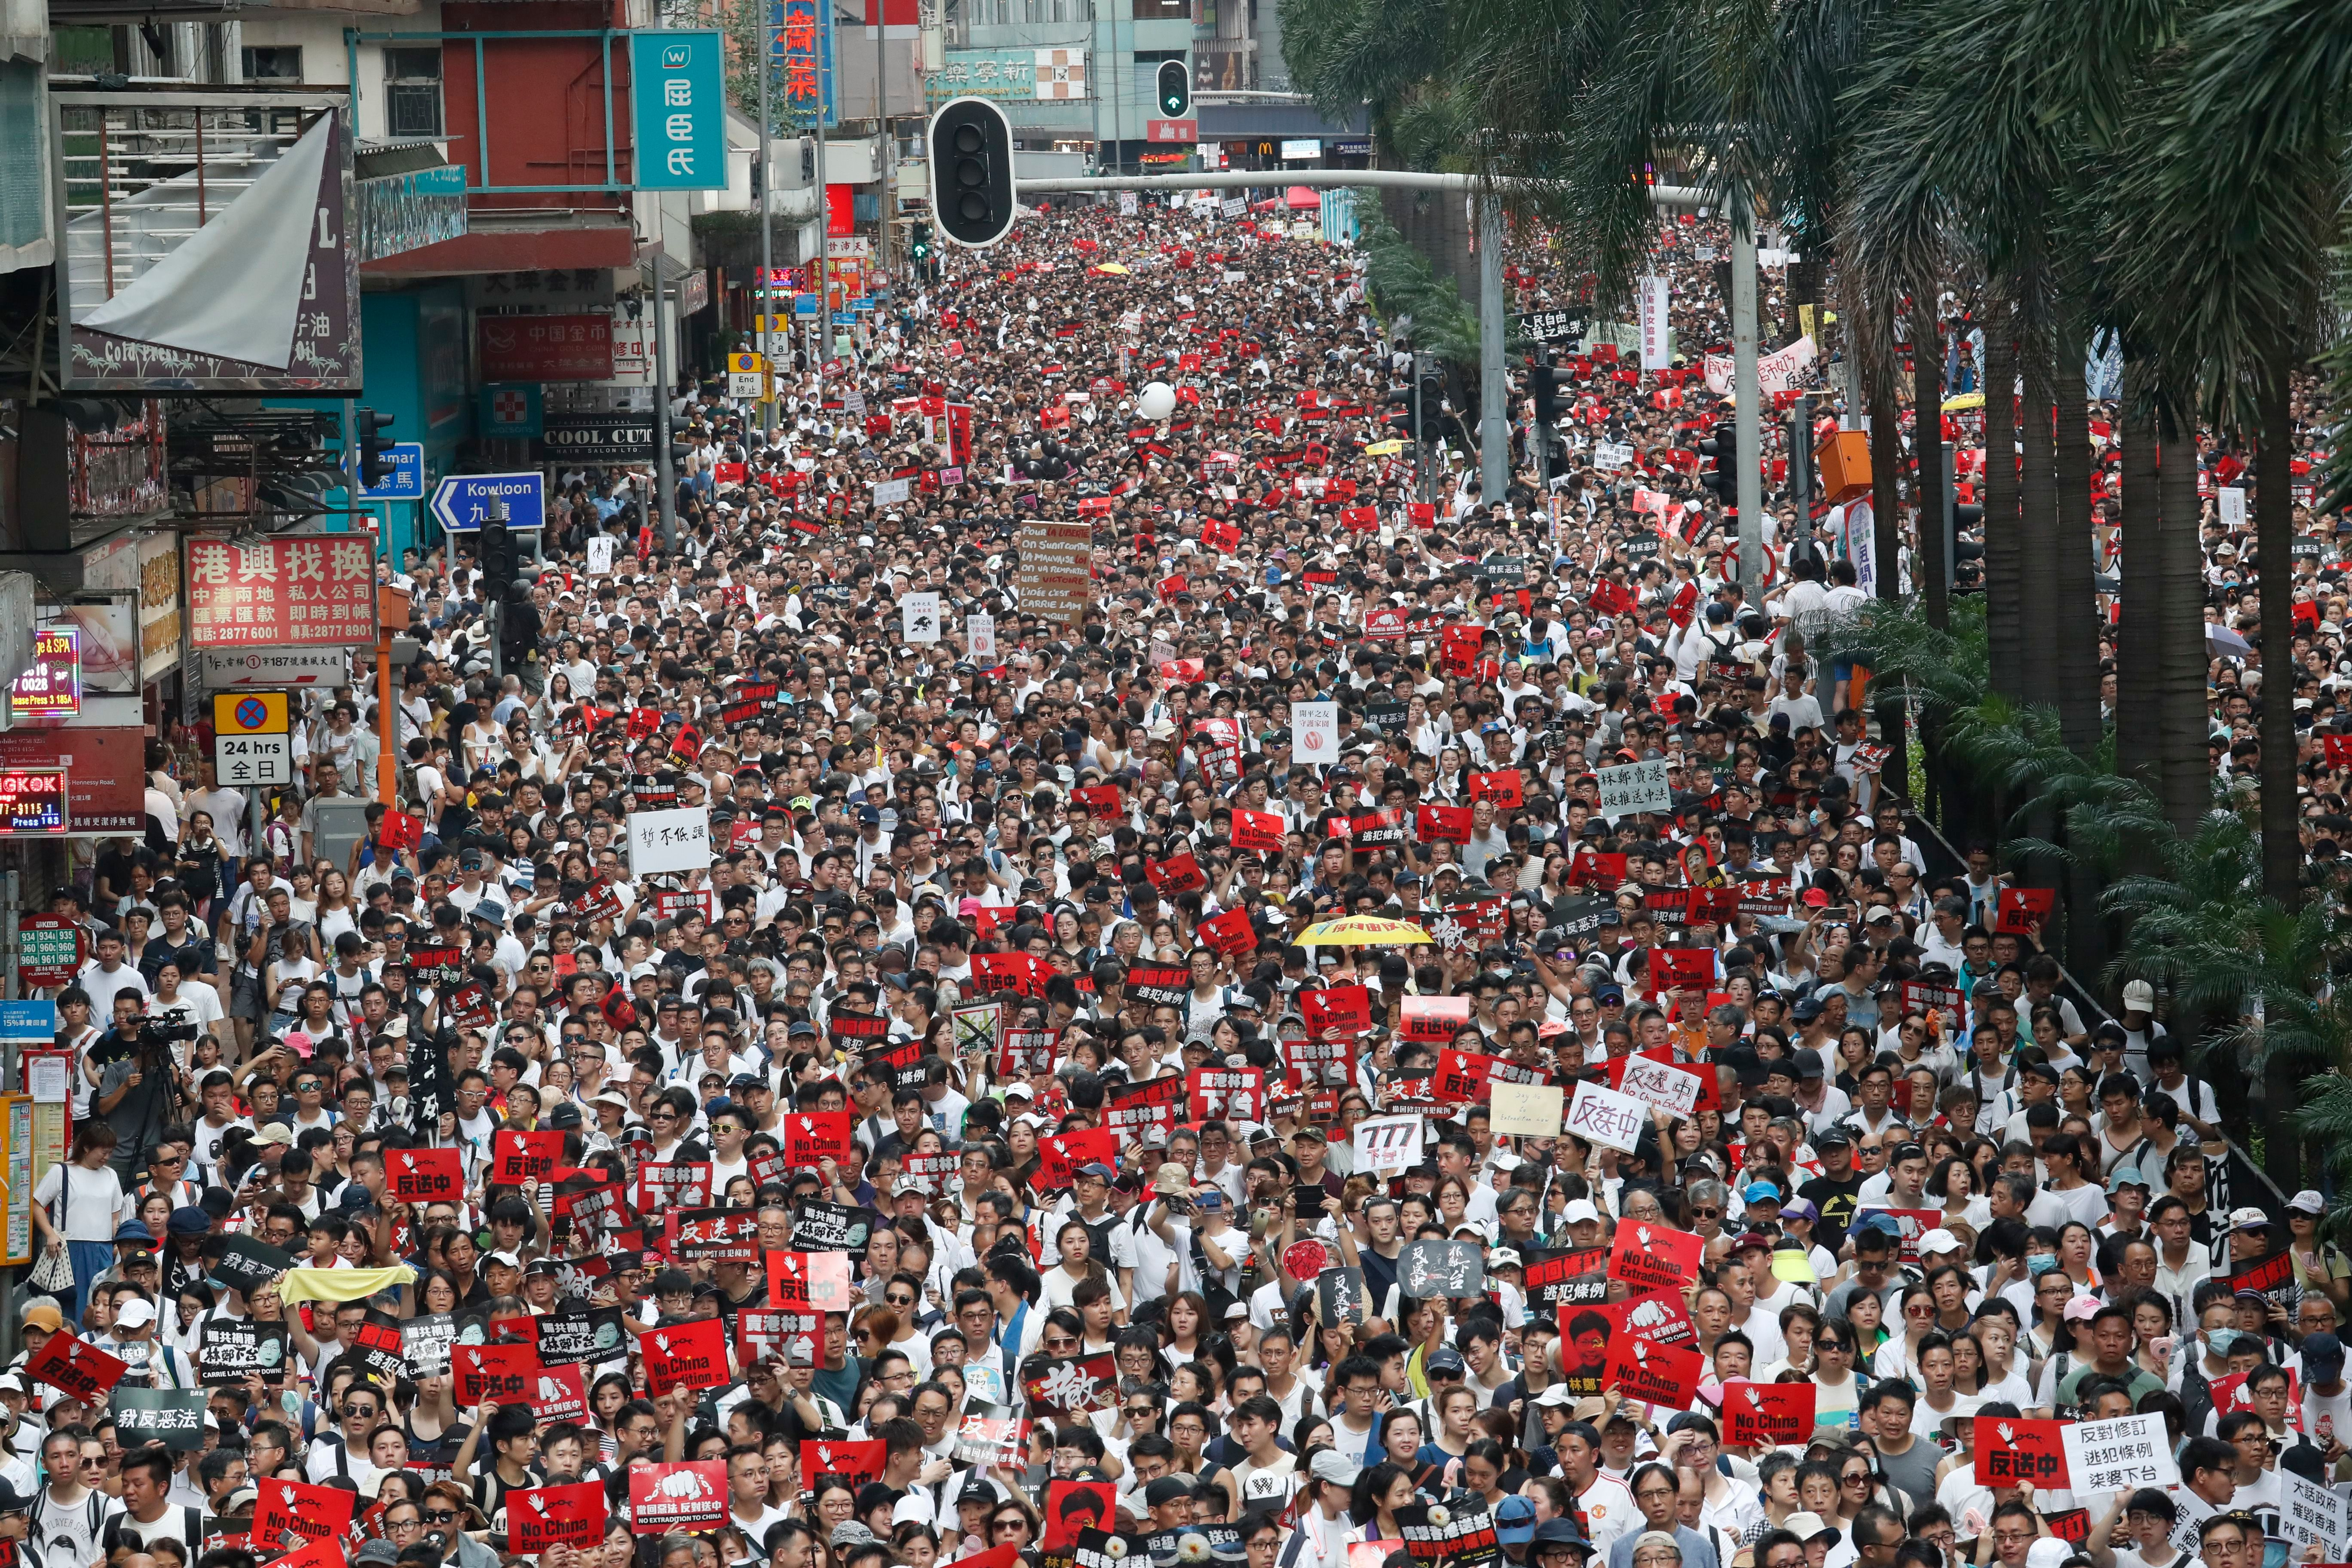 A million people also walked in Hong Kong on Sunday, June 9, said the march's organizers, to protest the extradition bill.